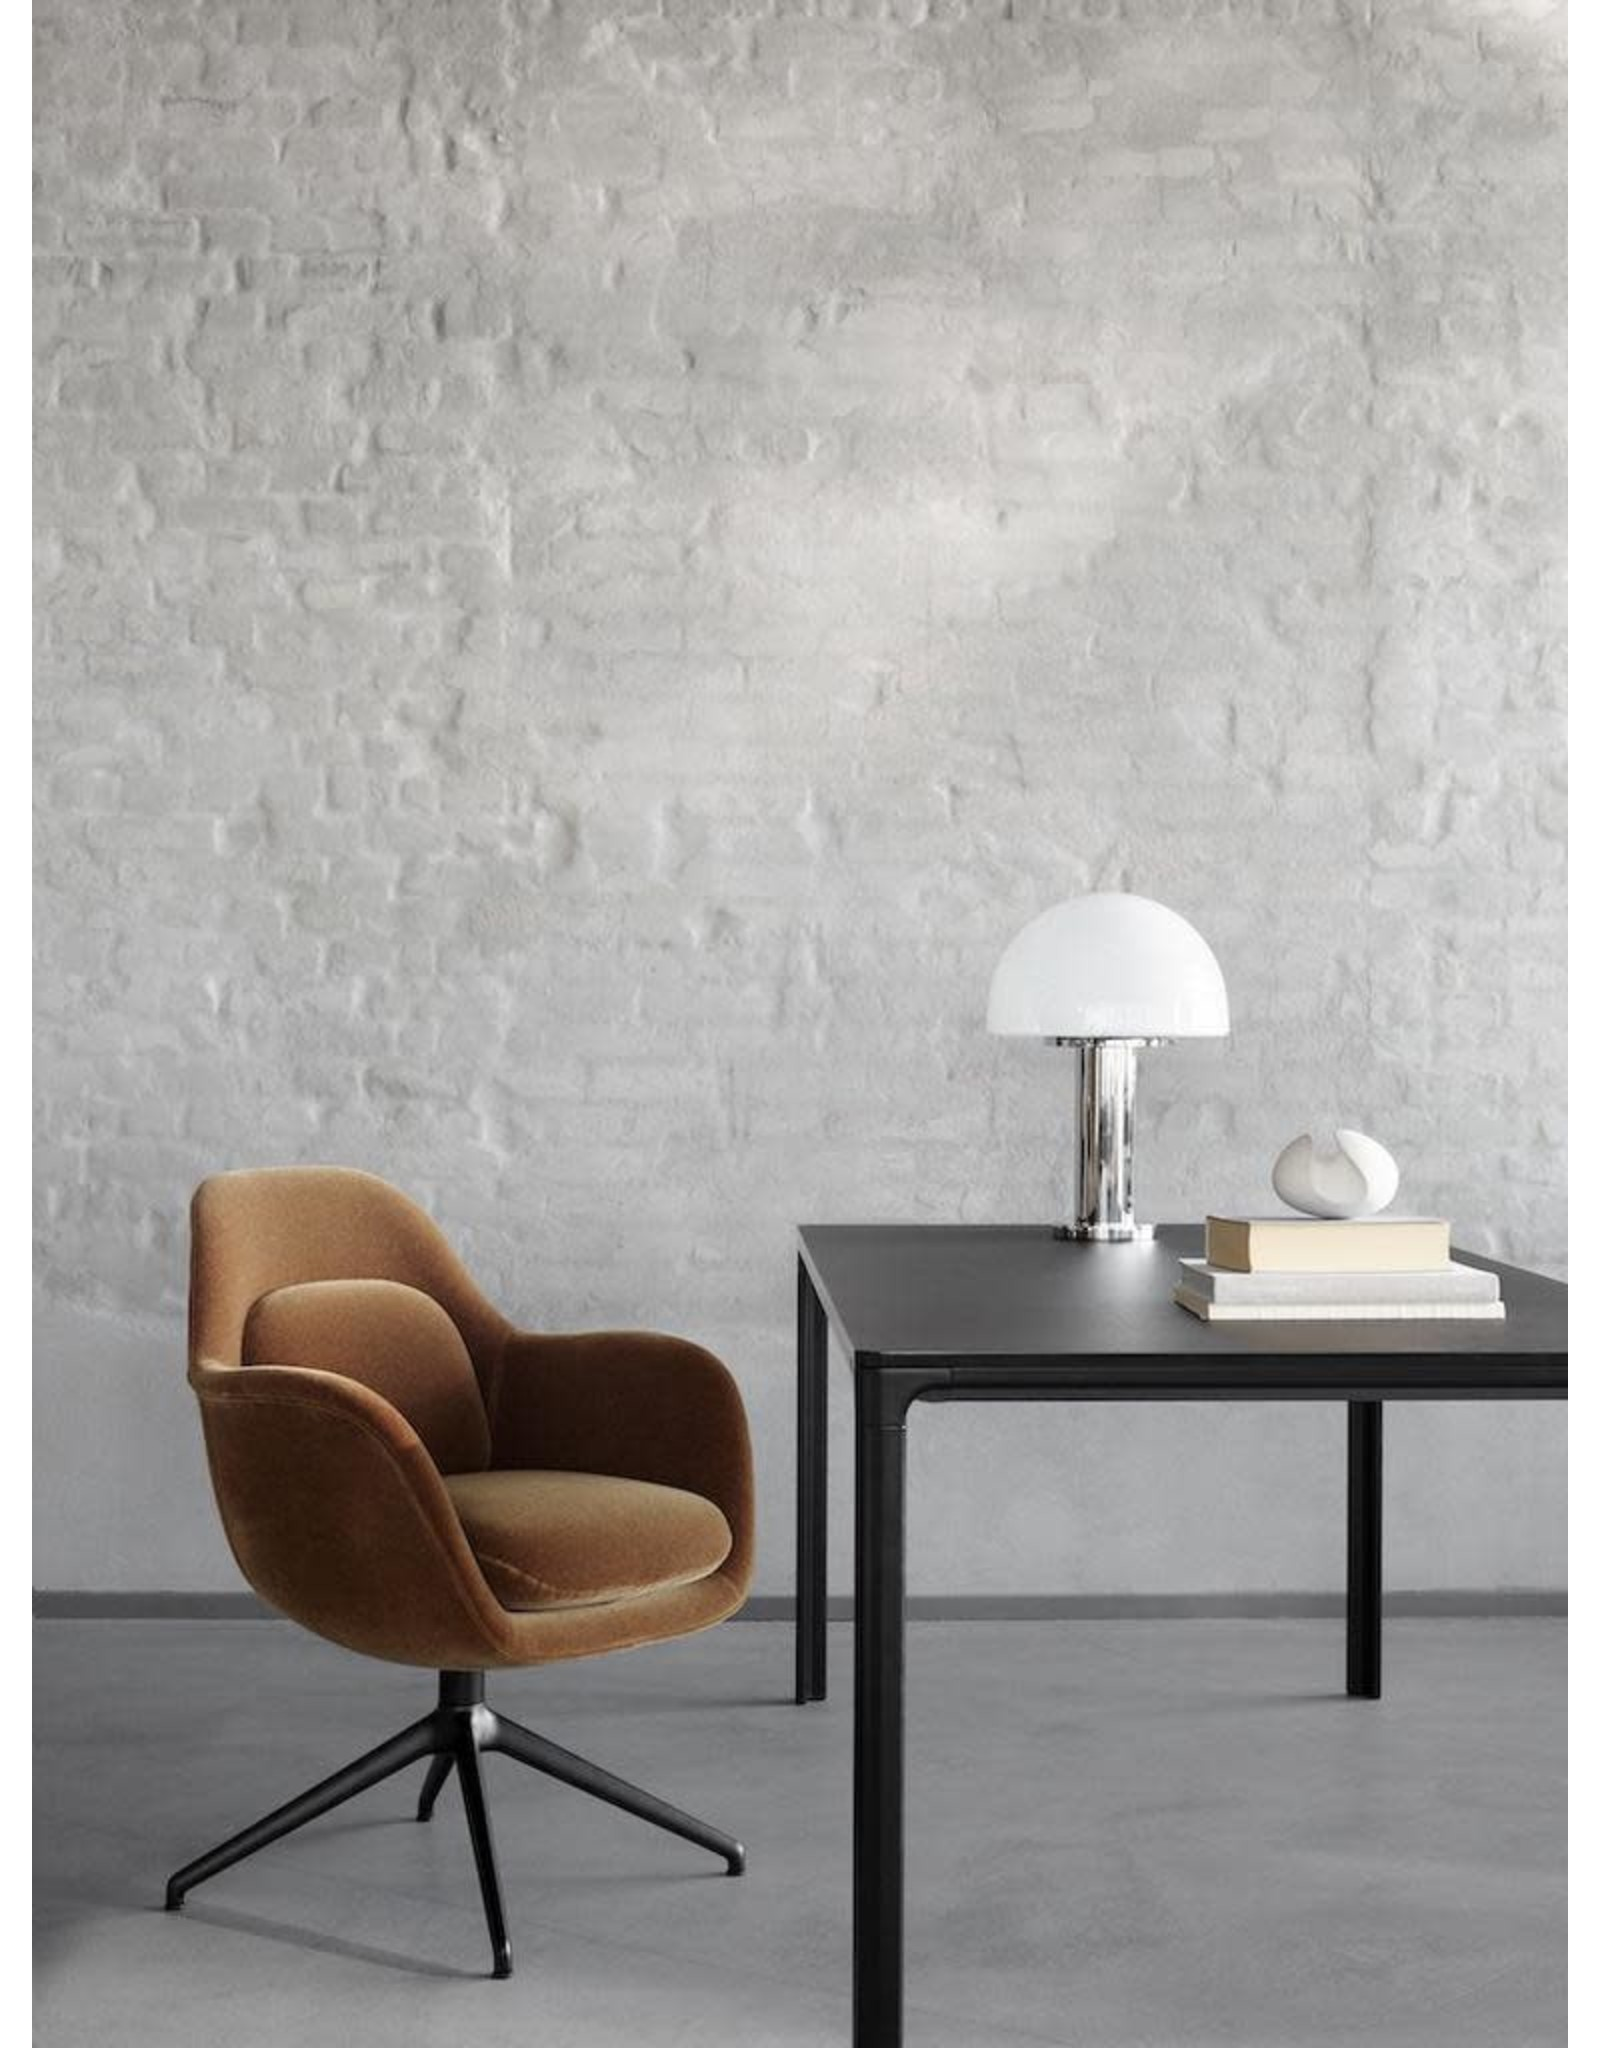 FREDERICIA 1779 SWOON CHAIR SWIVEL BASE